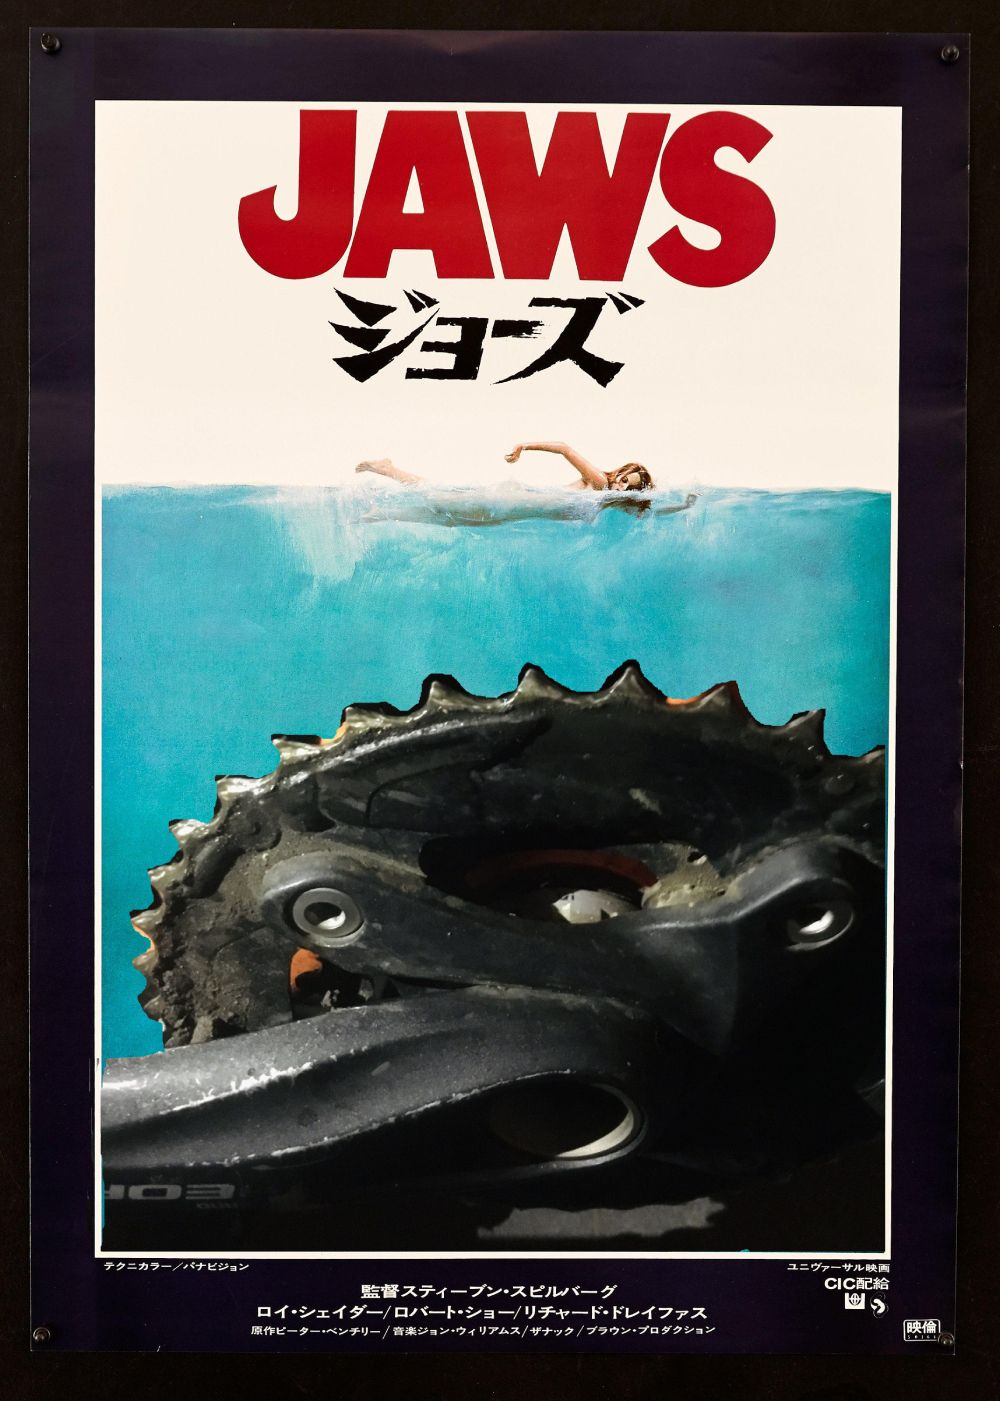 jaws-vintage-movie-poster-original-japanese-1-panel-20x29-6186.jpg